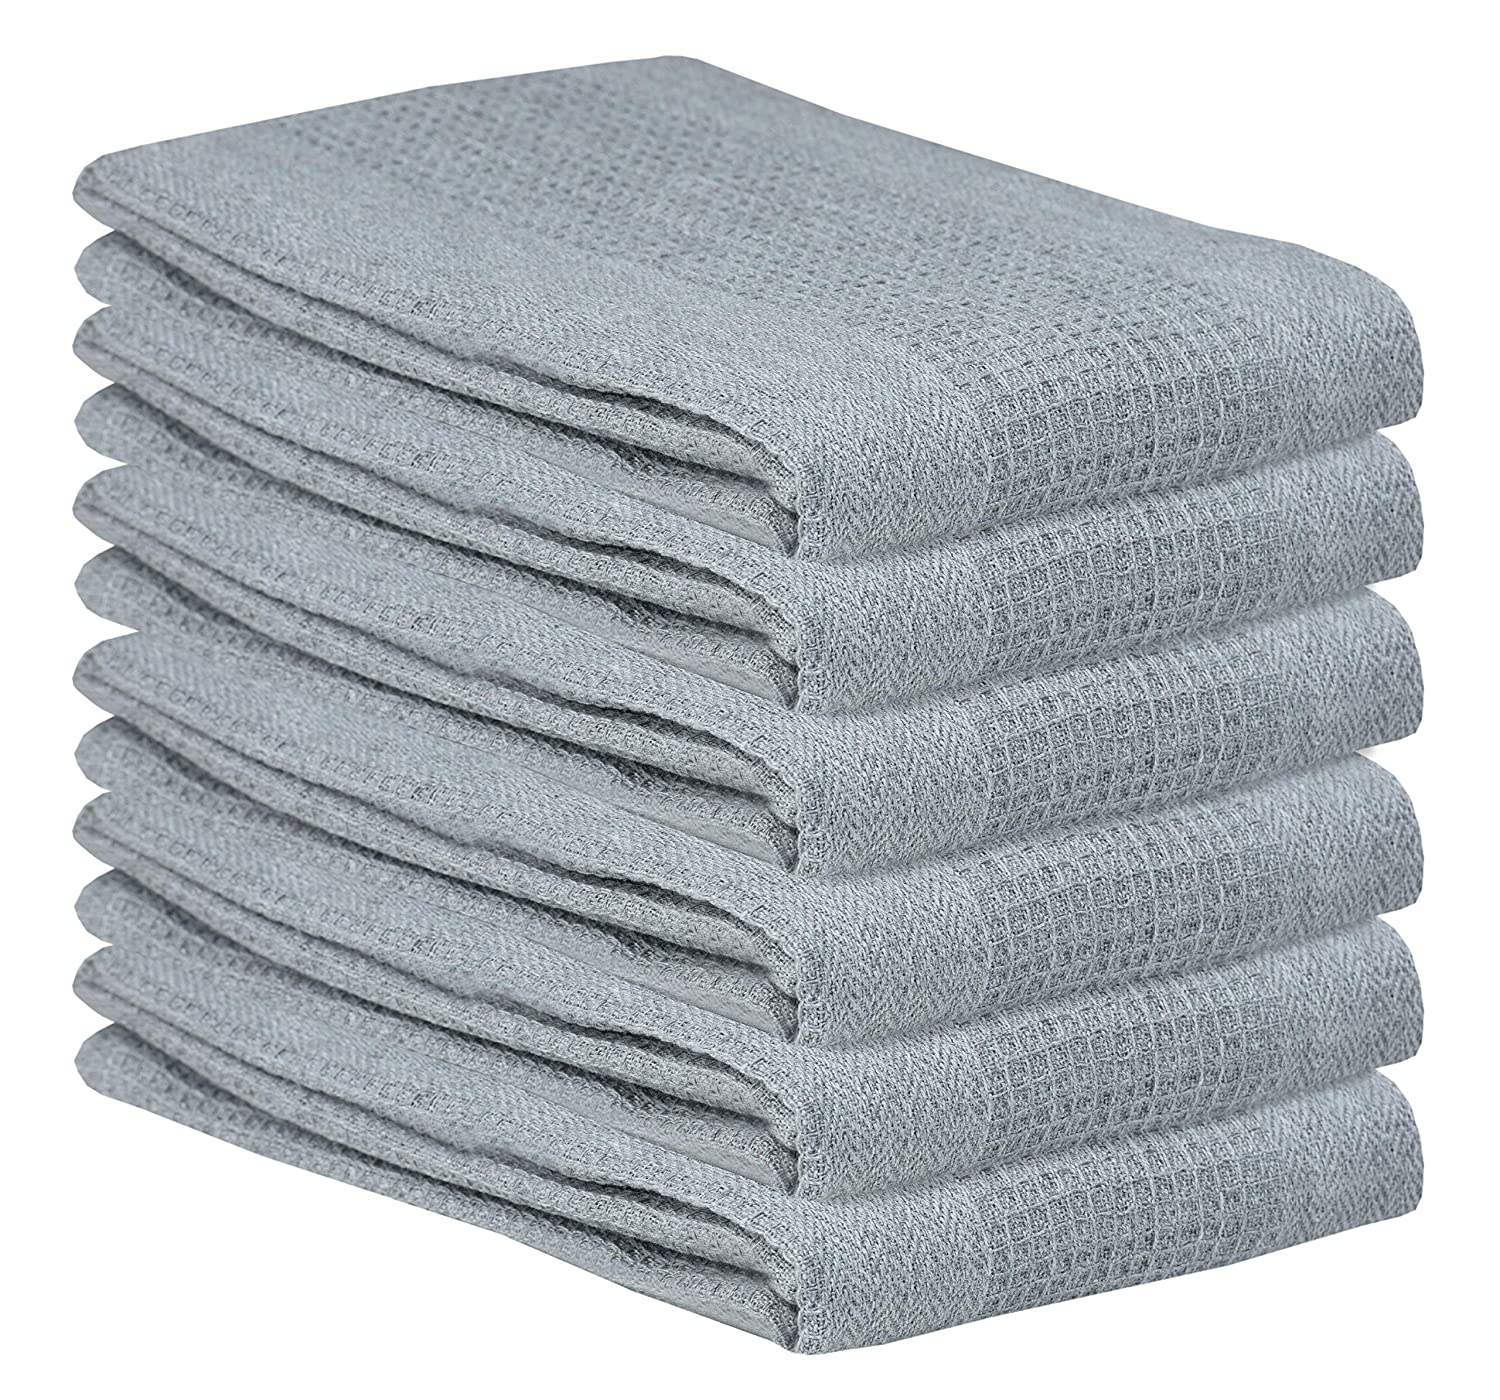 Absorbent Waffle Weave 6 Pack 18x28 White Quick Dry Kitchen Tea Towels Cleaning Towels Bar Towels Highly Absorbent Pure Cotton Kitchen Towel- Waffle Weave Tea Towels